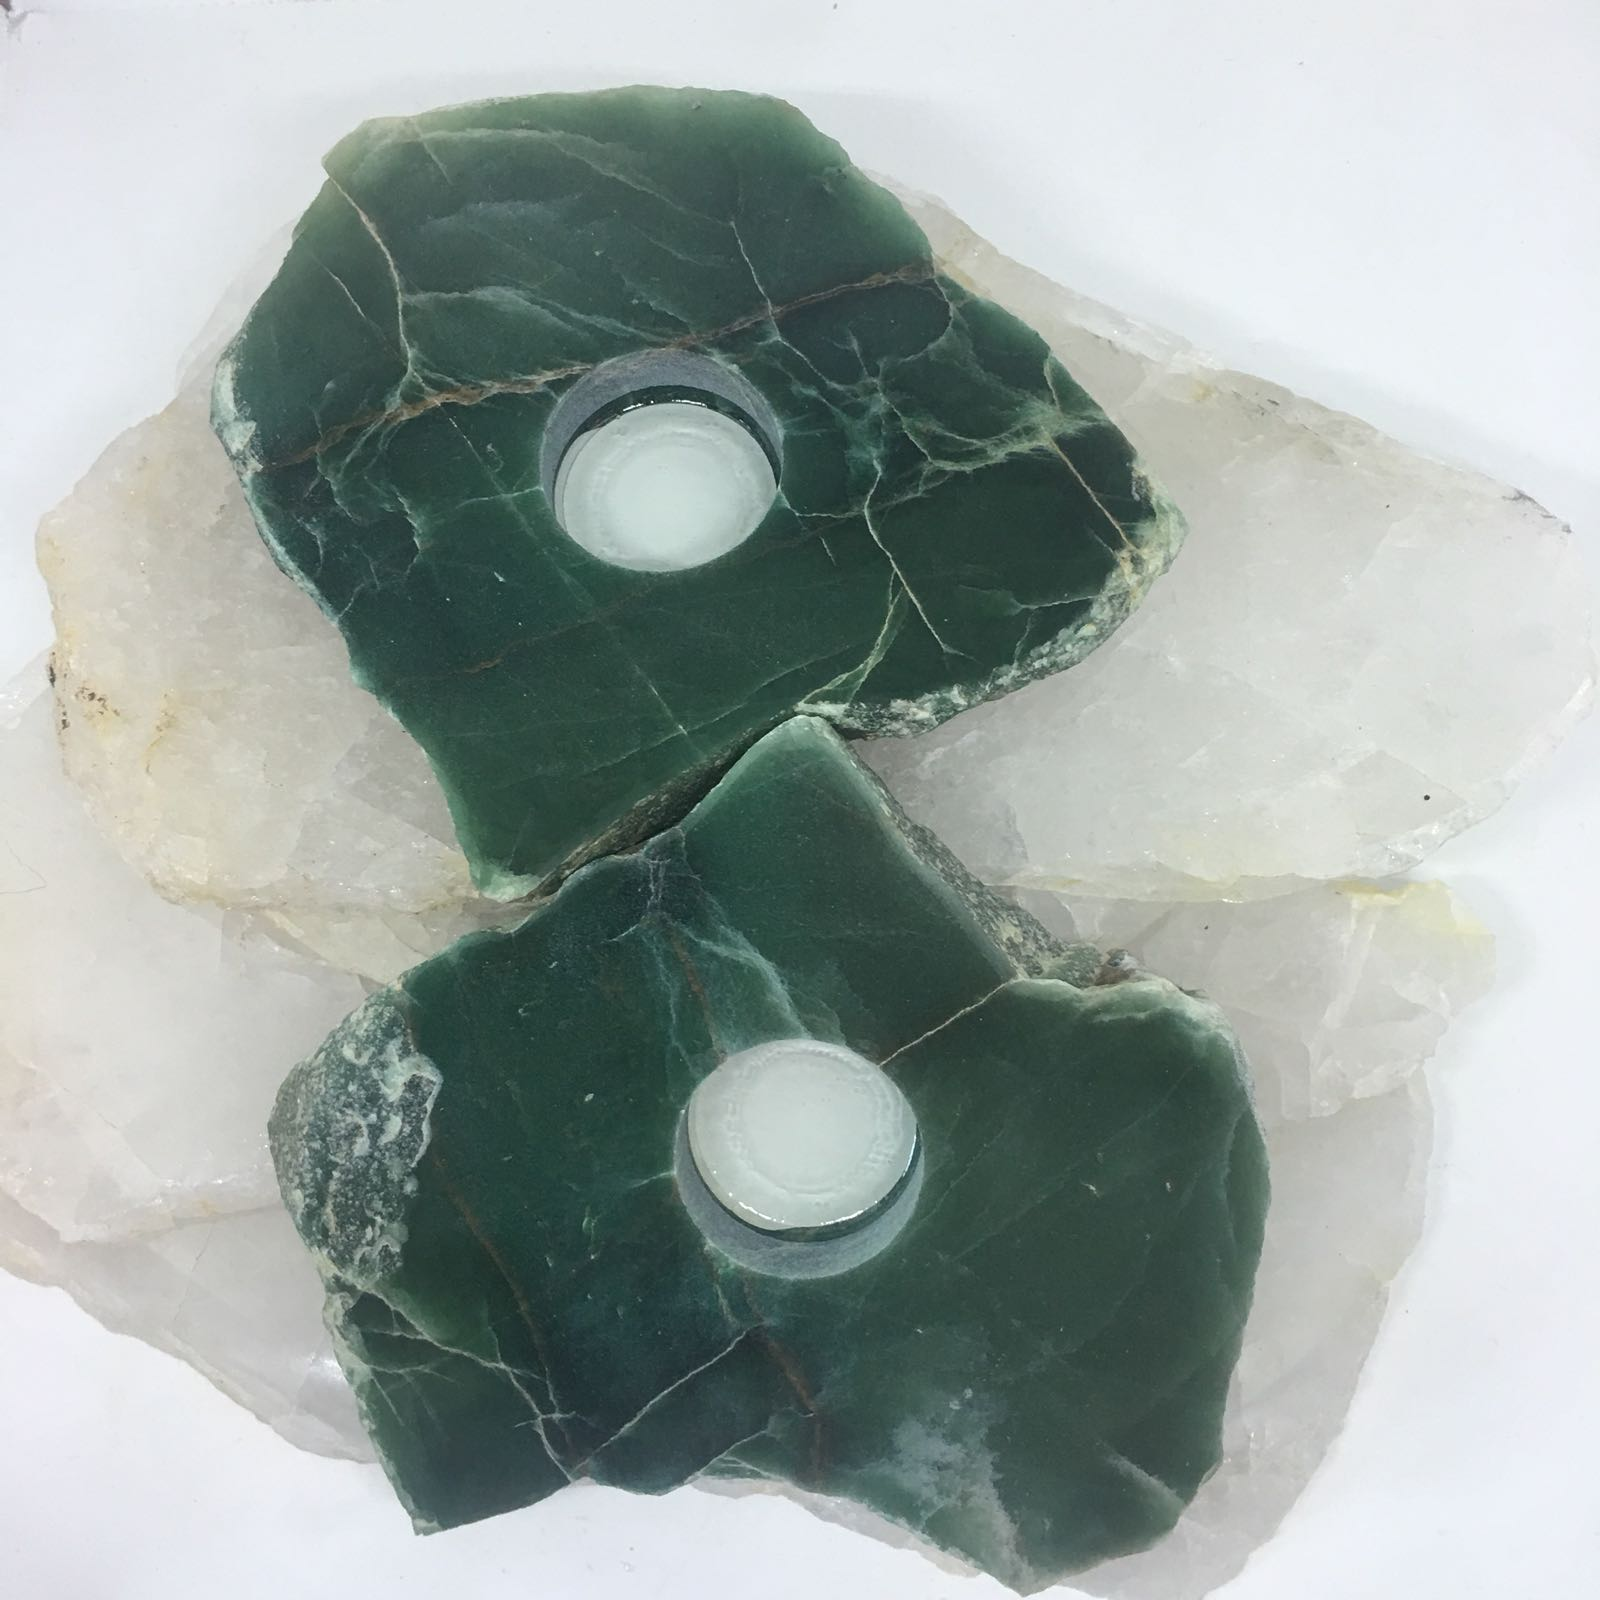 Stones from Uruguay - Polished Green Aventurine  Slice Tealight Holder Candle